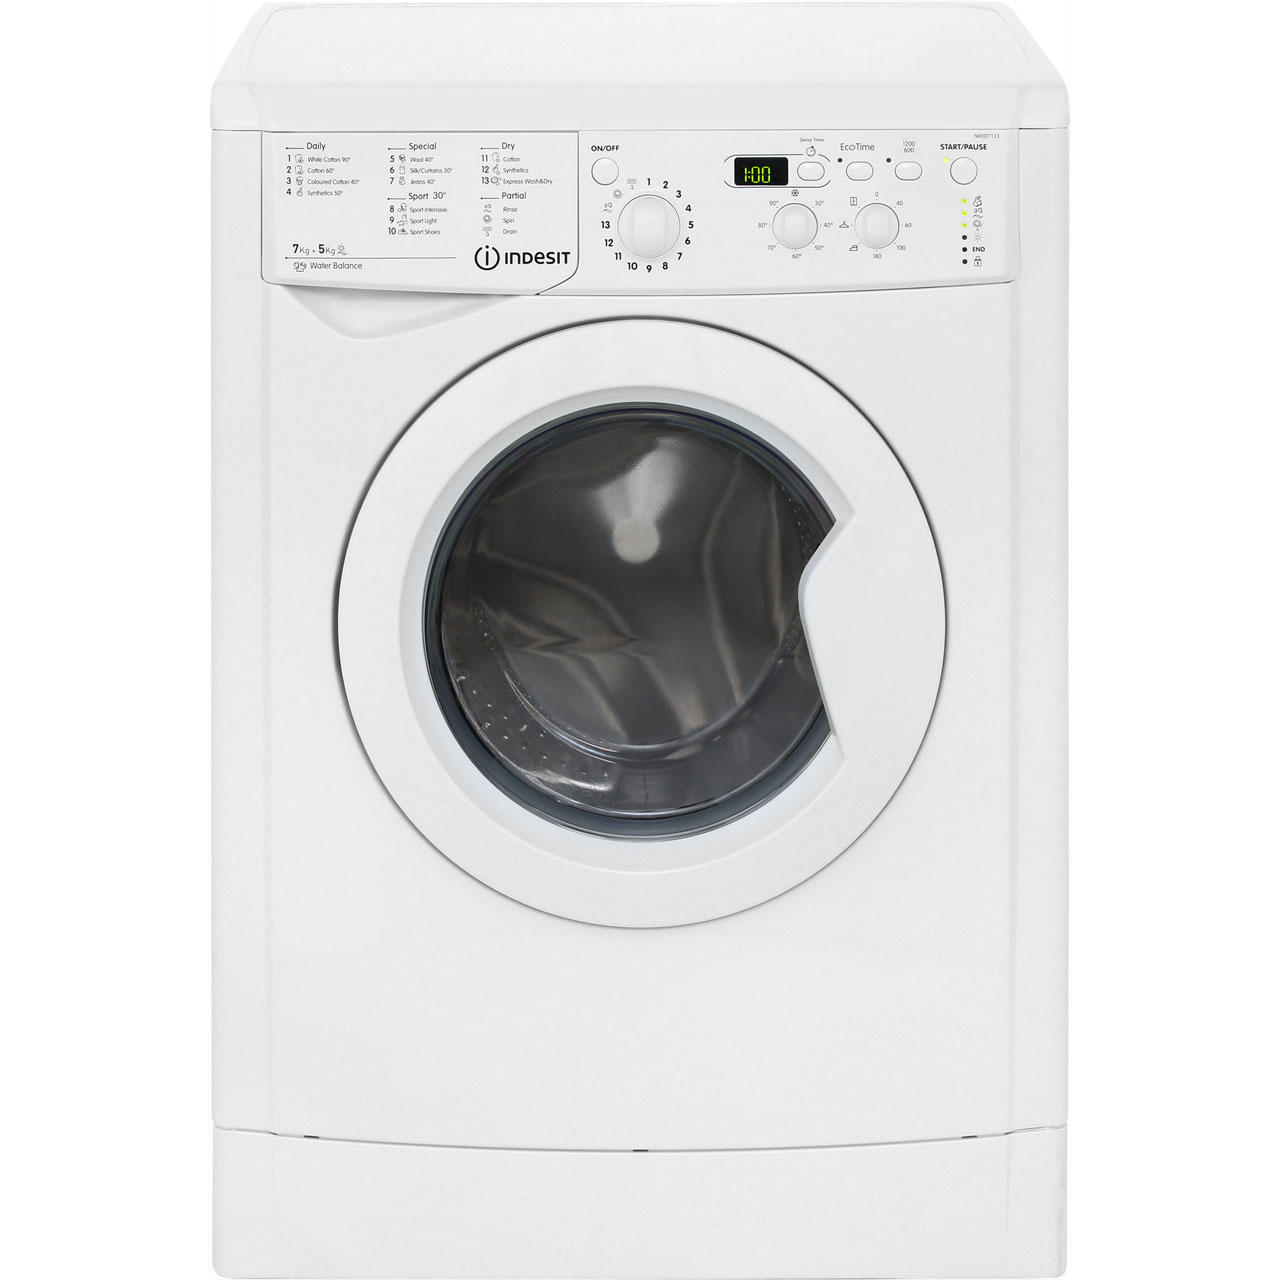 Indesit Advance IWDD7123 7Kg / 5Kg Washer Dryer with 1200 rpm - White